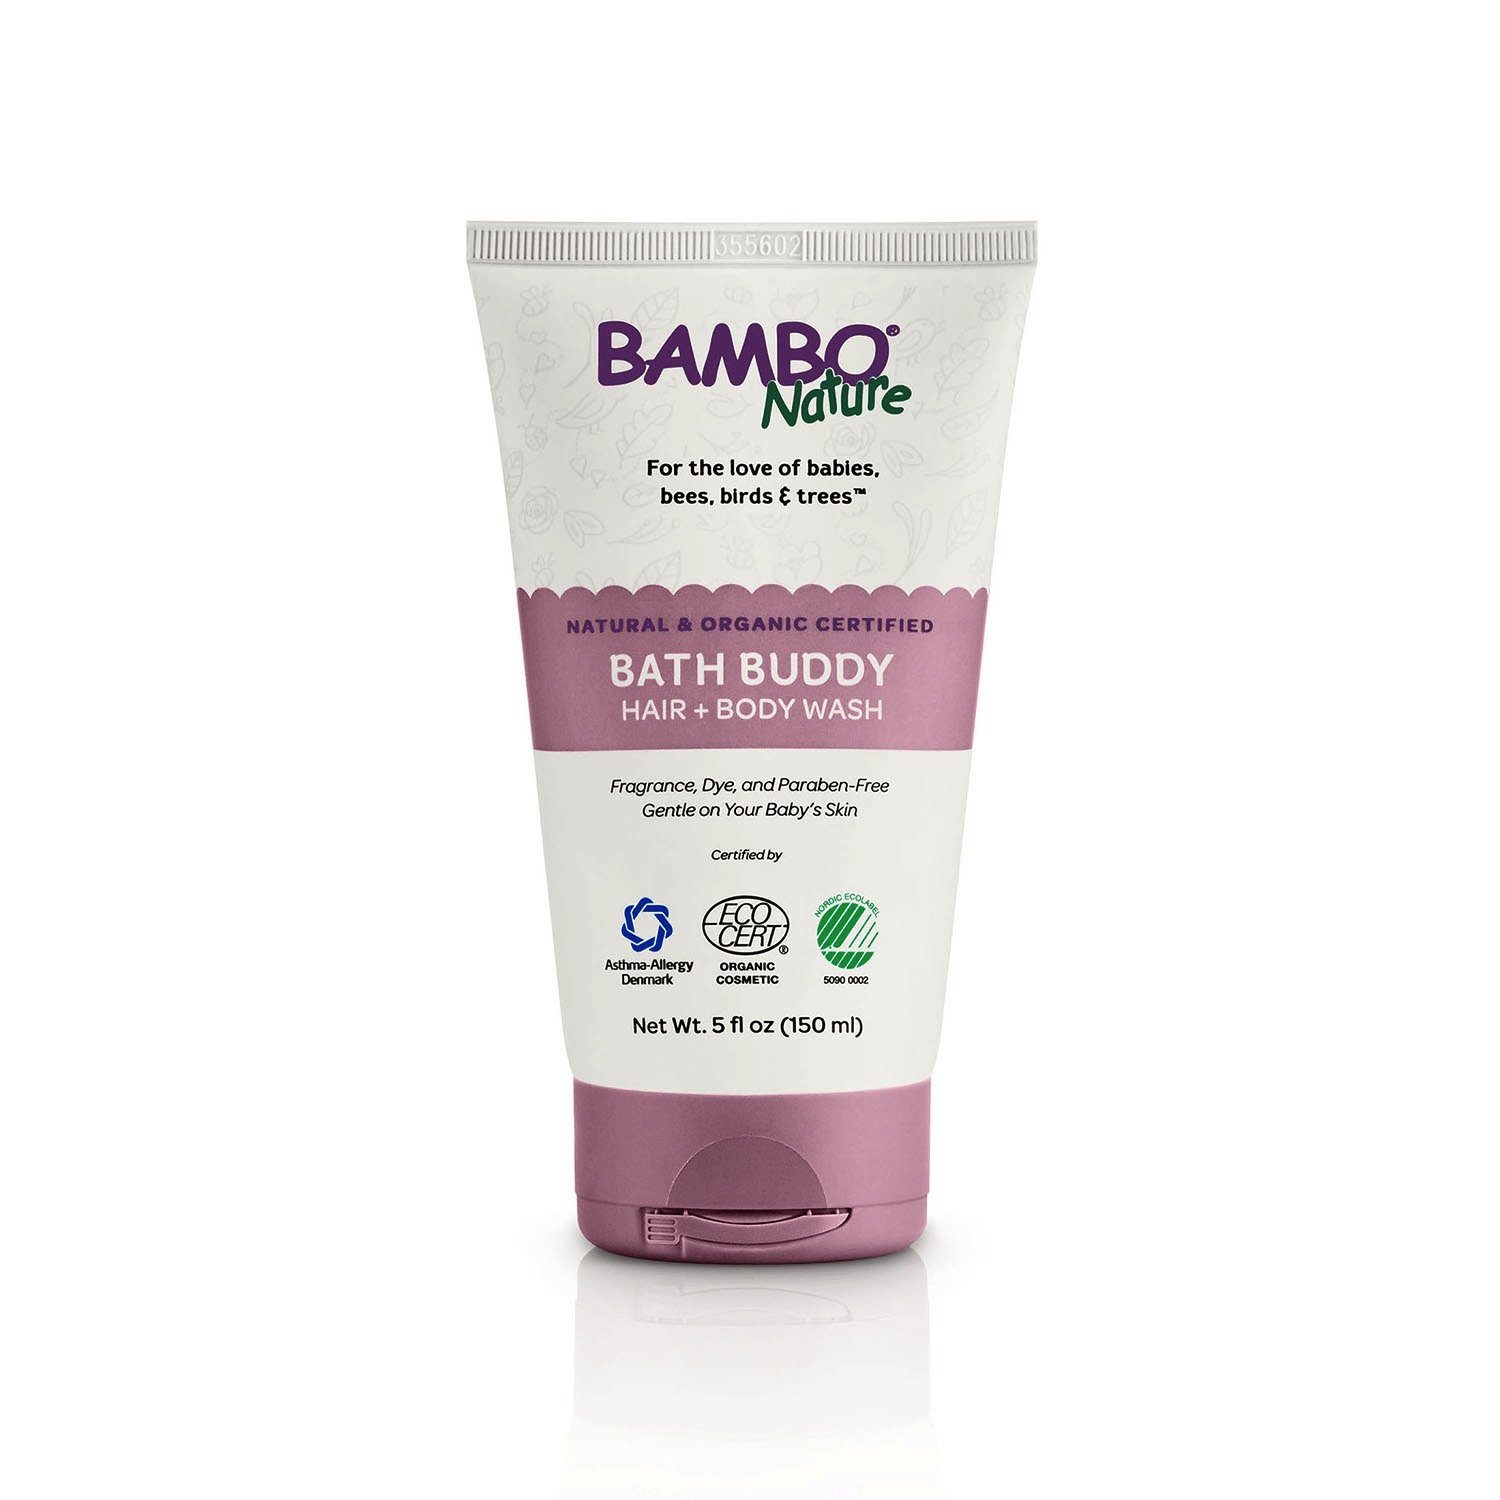 Bambo Nature Bath Buddy Hair & Body Wash, 5 fl oz, 6 Tubes/Case by Bambo Nature